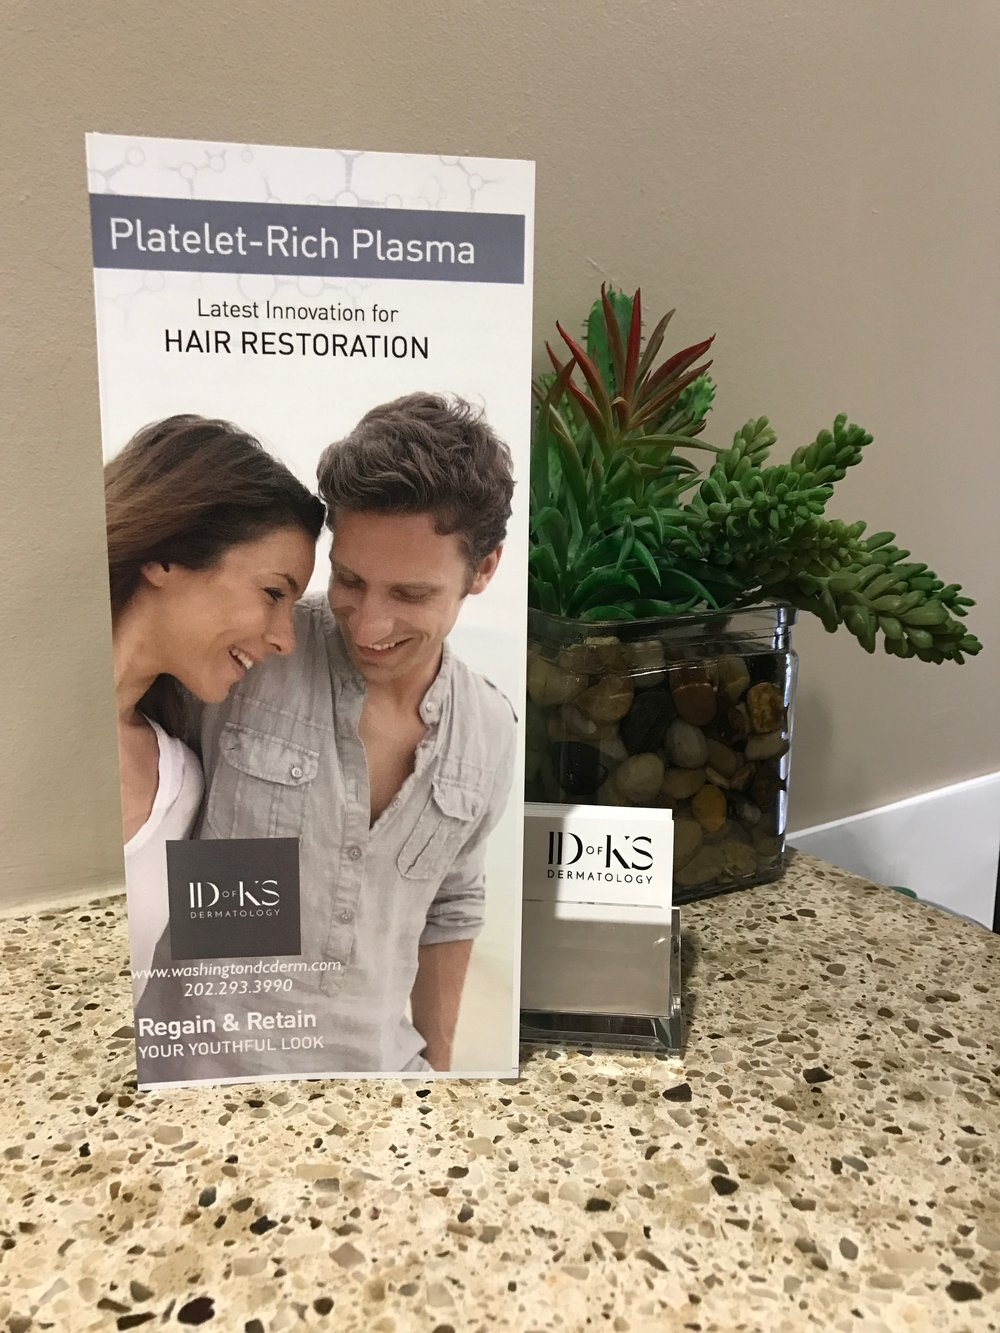 Grab one of our brochures when you stop by!